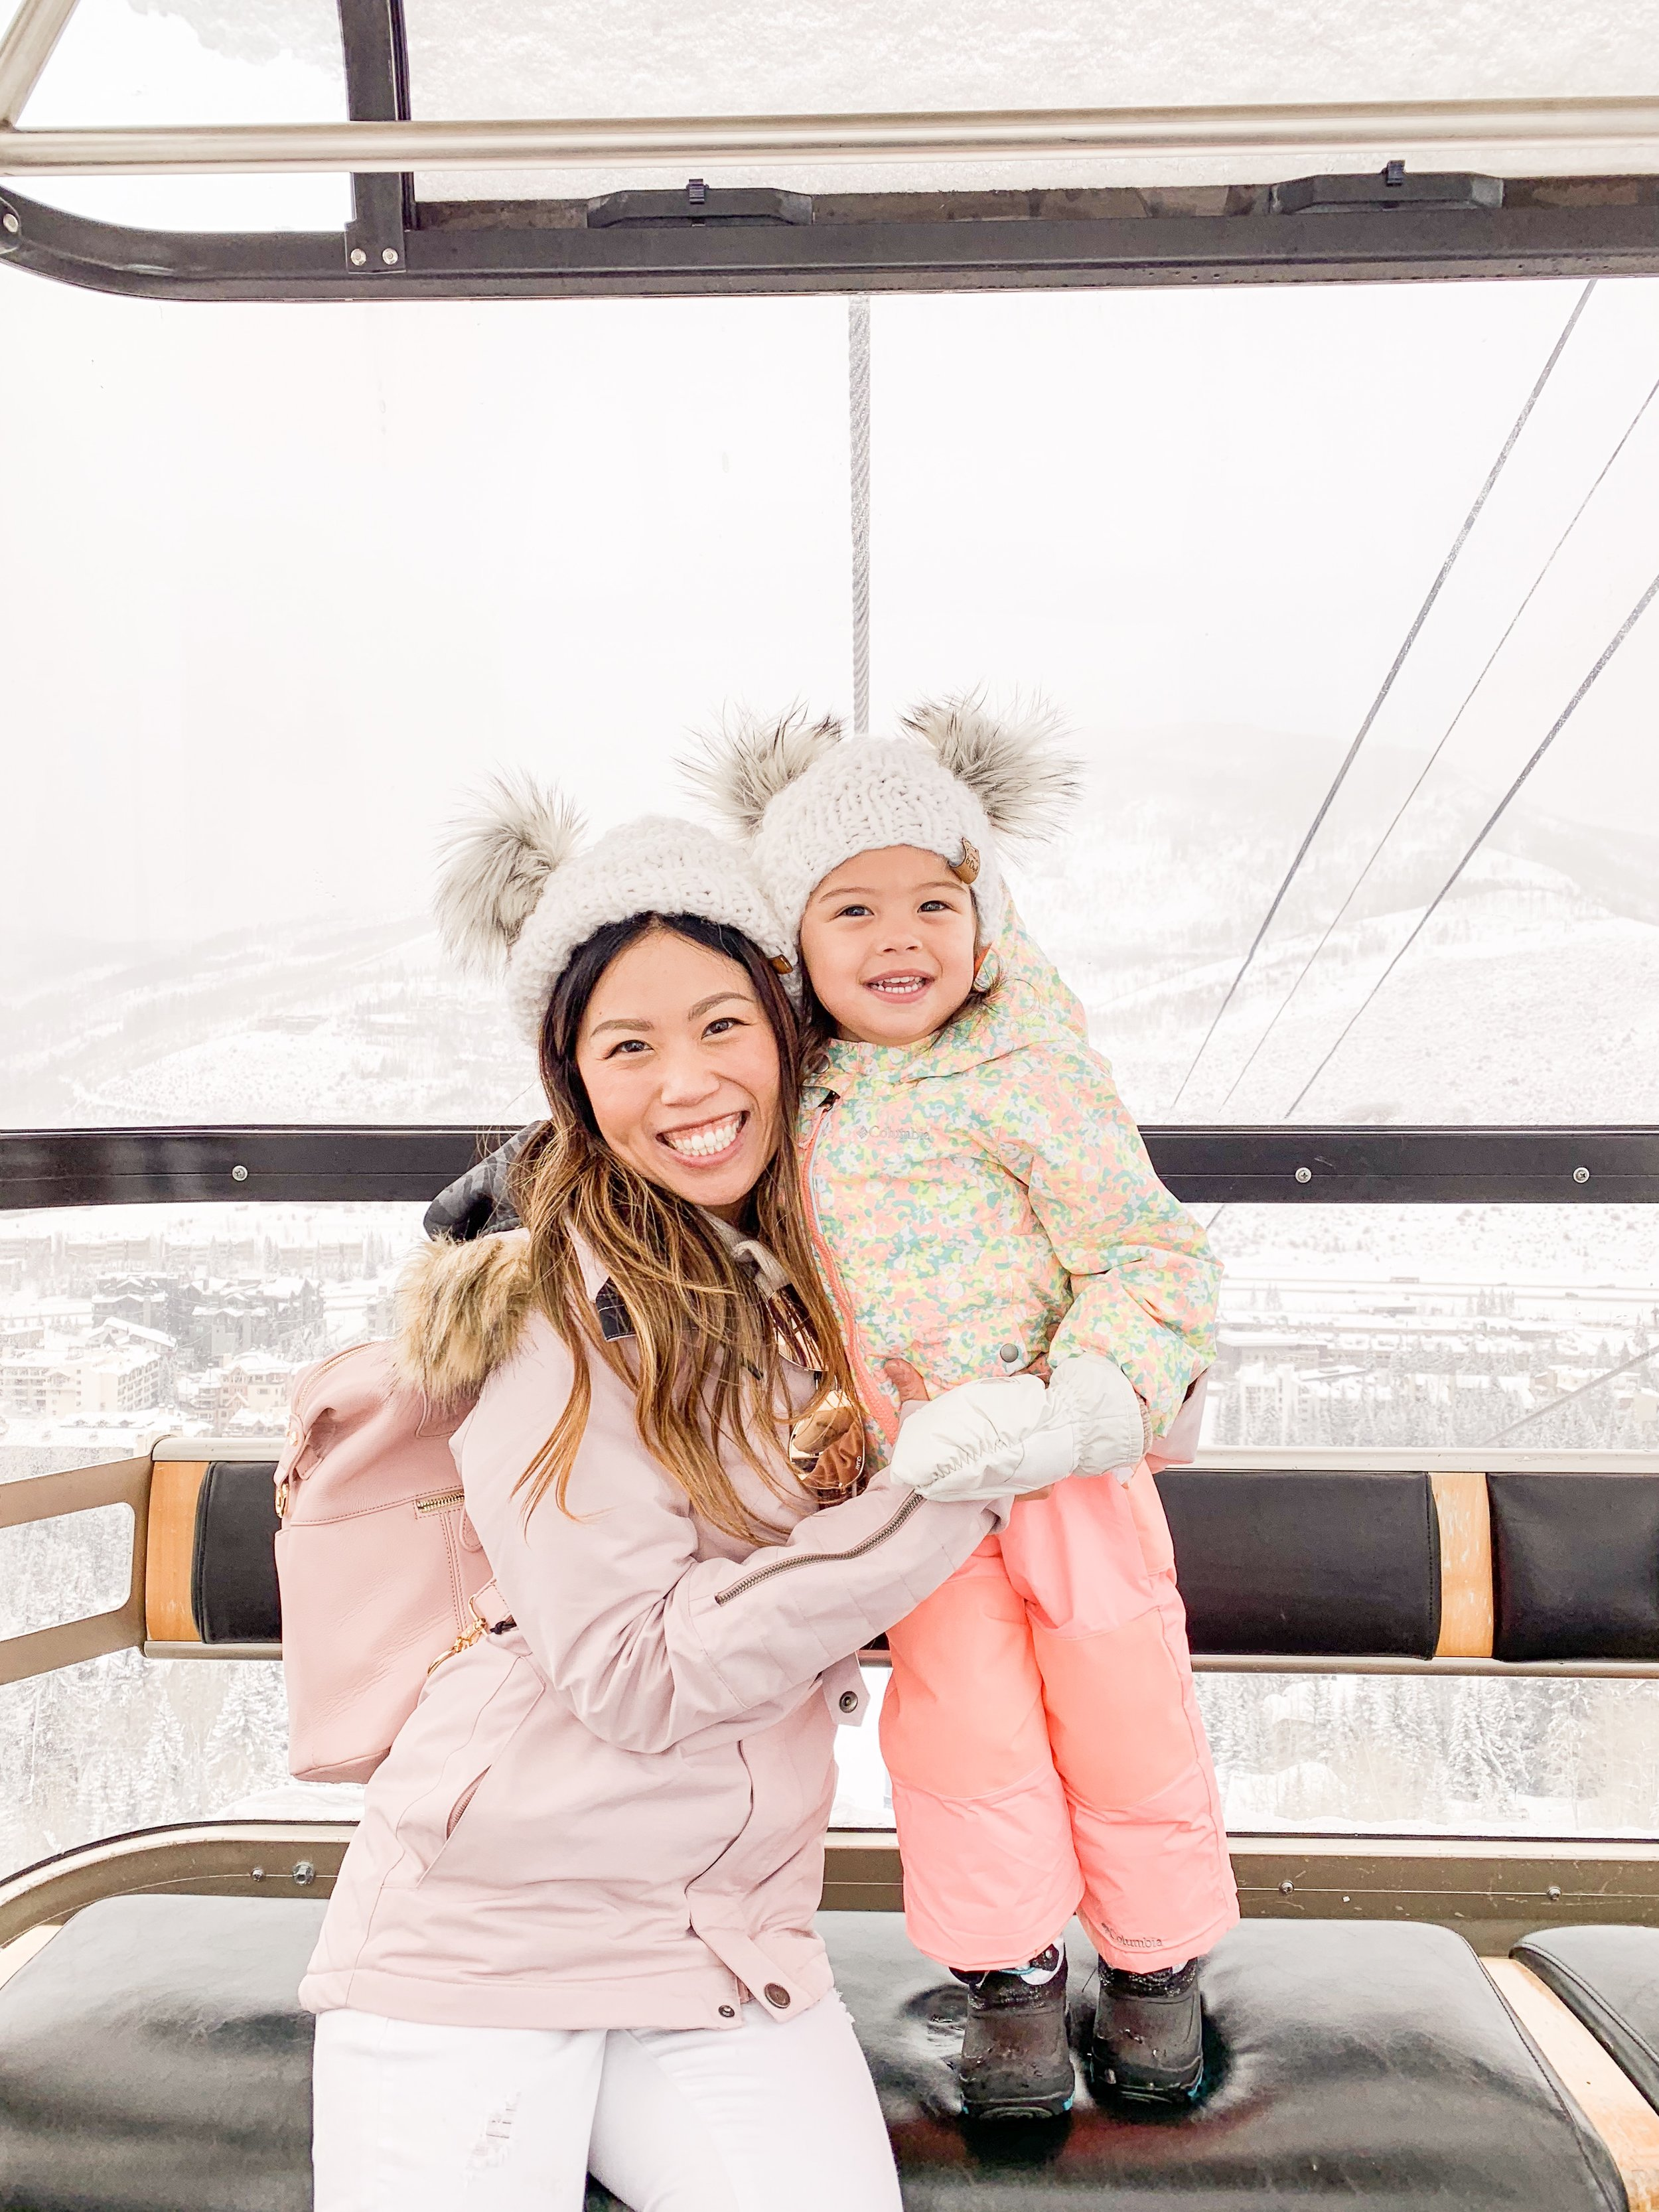 4 Days in Vail Colorado with a Toddler - How to Prepare for Baby's First Ski Trip and 5 Winter Family Activities Hotel Talisa Review Joyfullygreen Family Travel Blogger Gondola Ride